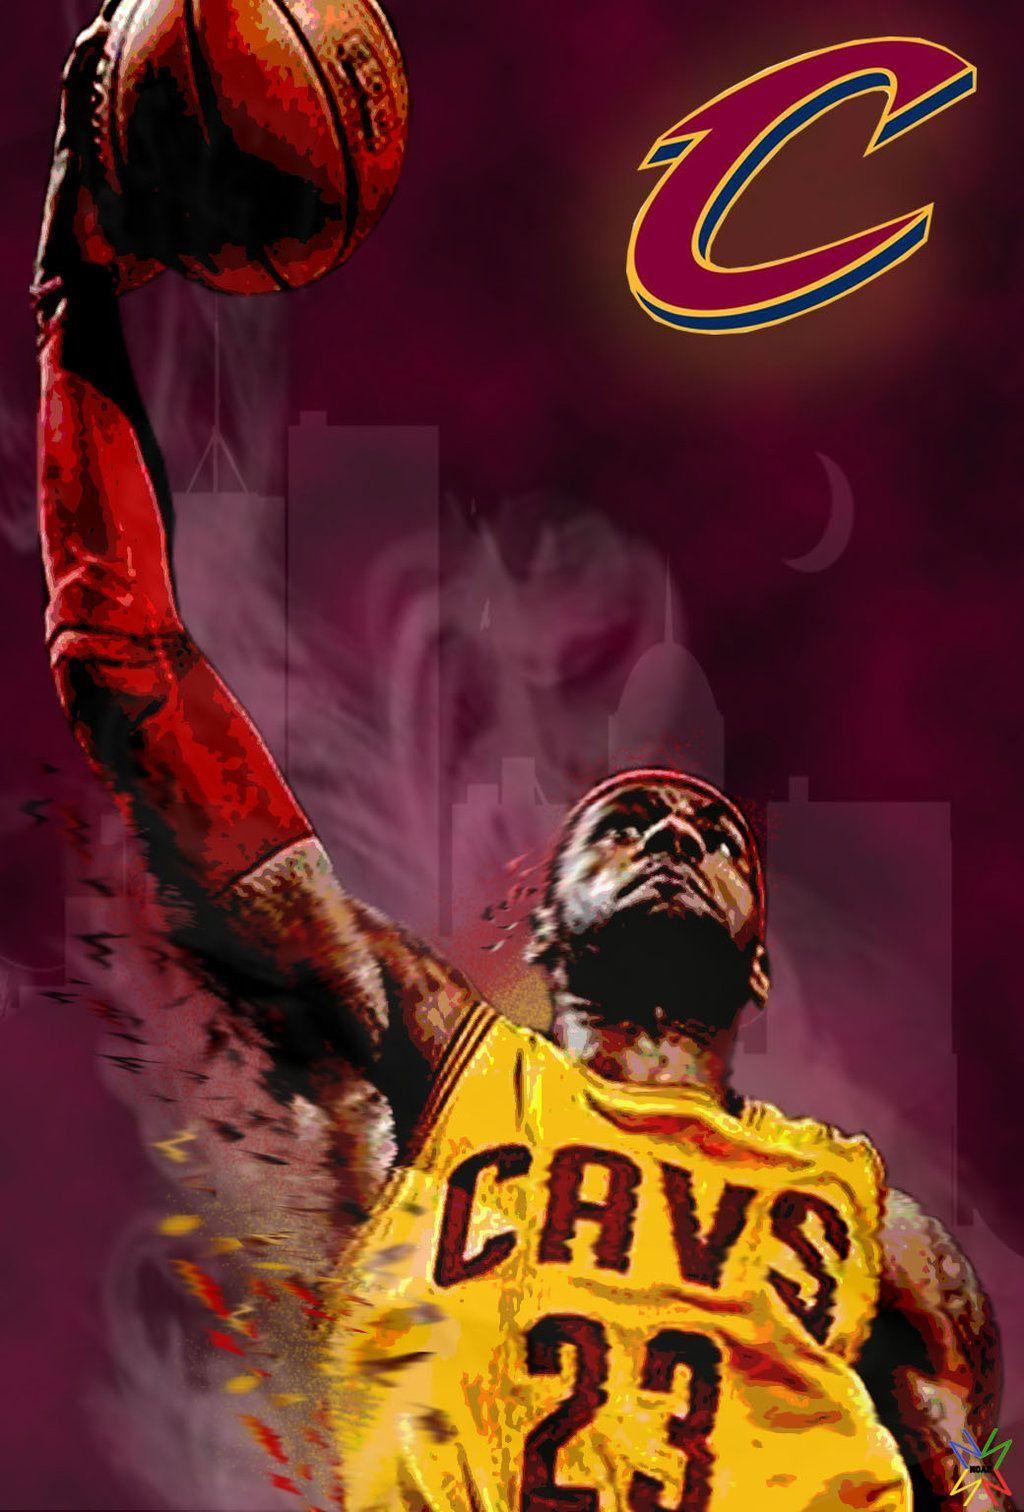 lebron james cavs 6 - photo #5